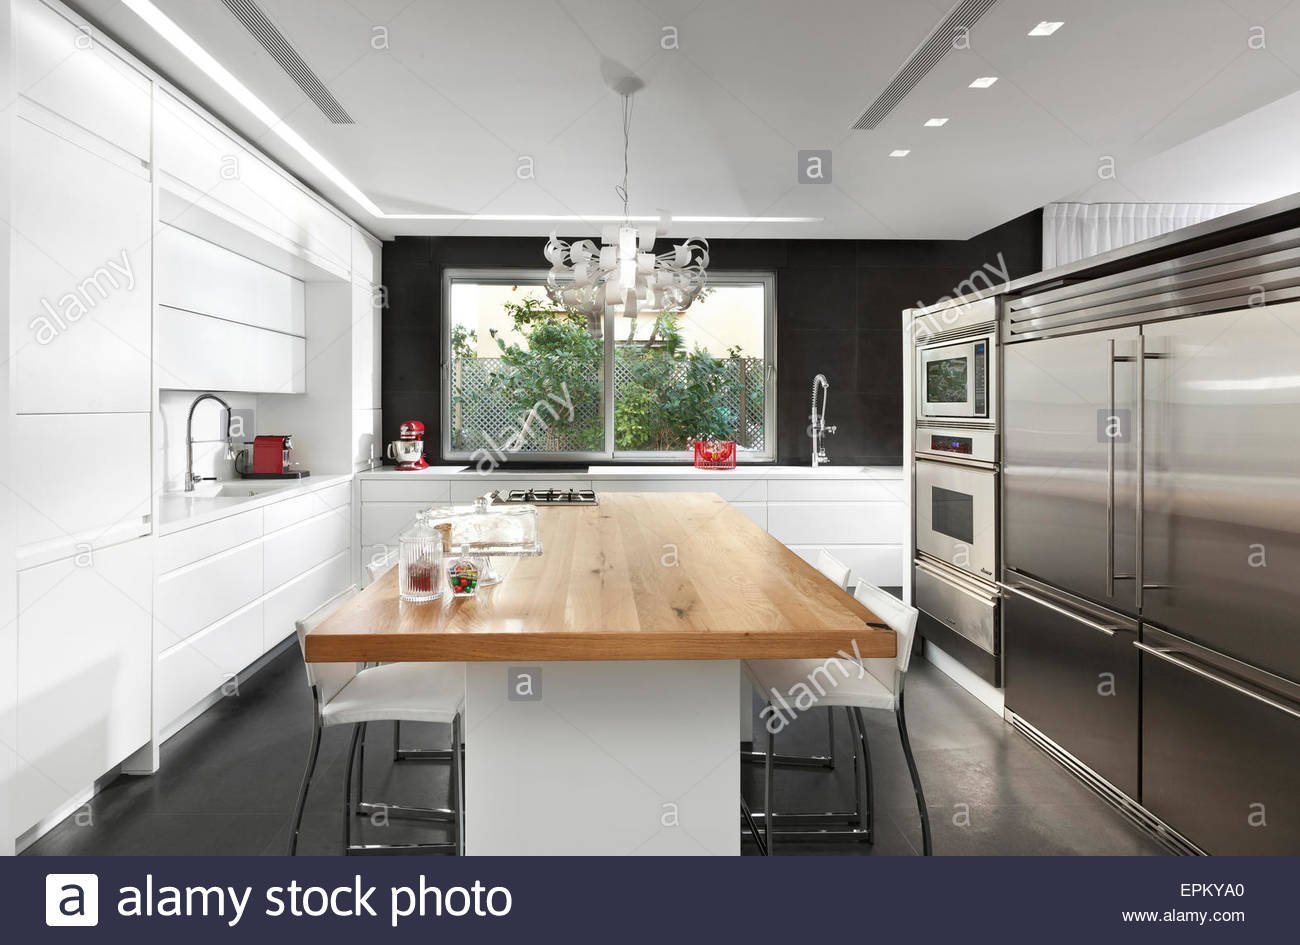 black and white kitchen with wooden dining table in modern villa givat EPKYA0